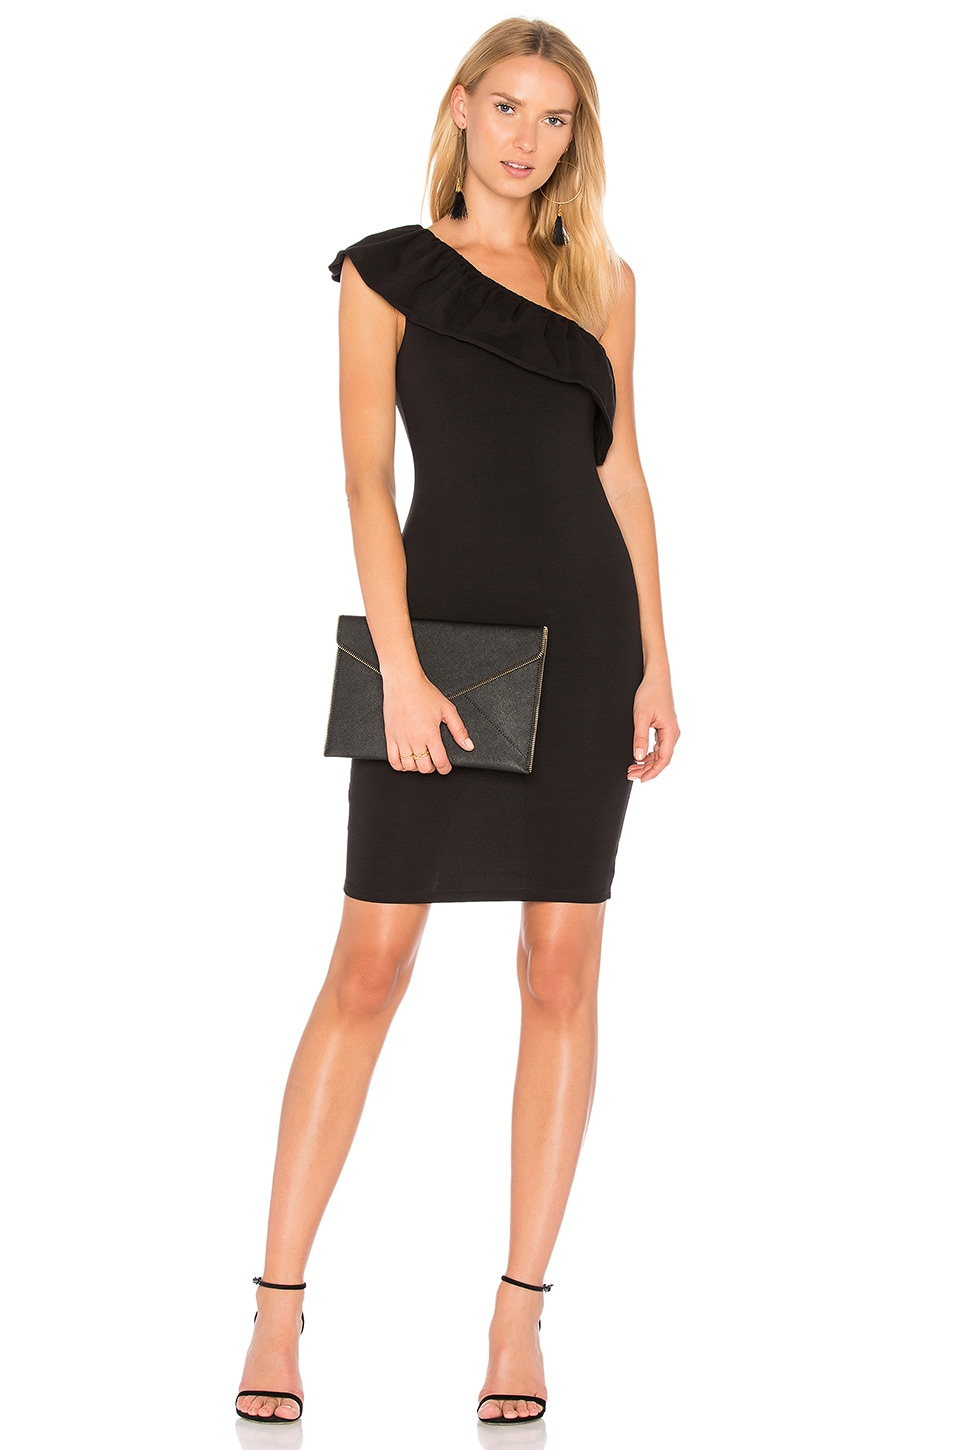 LA Made Felicity One Shoulder Dress in Black | REVOLVE